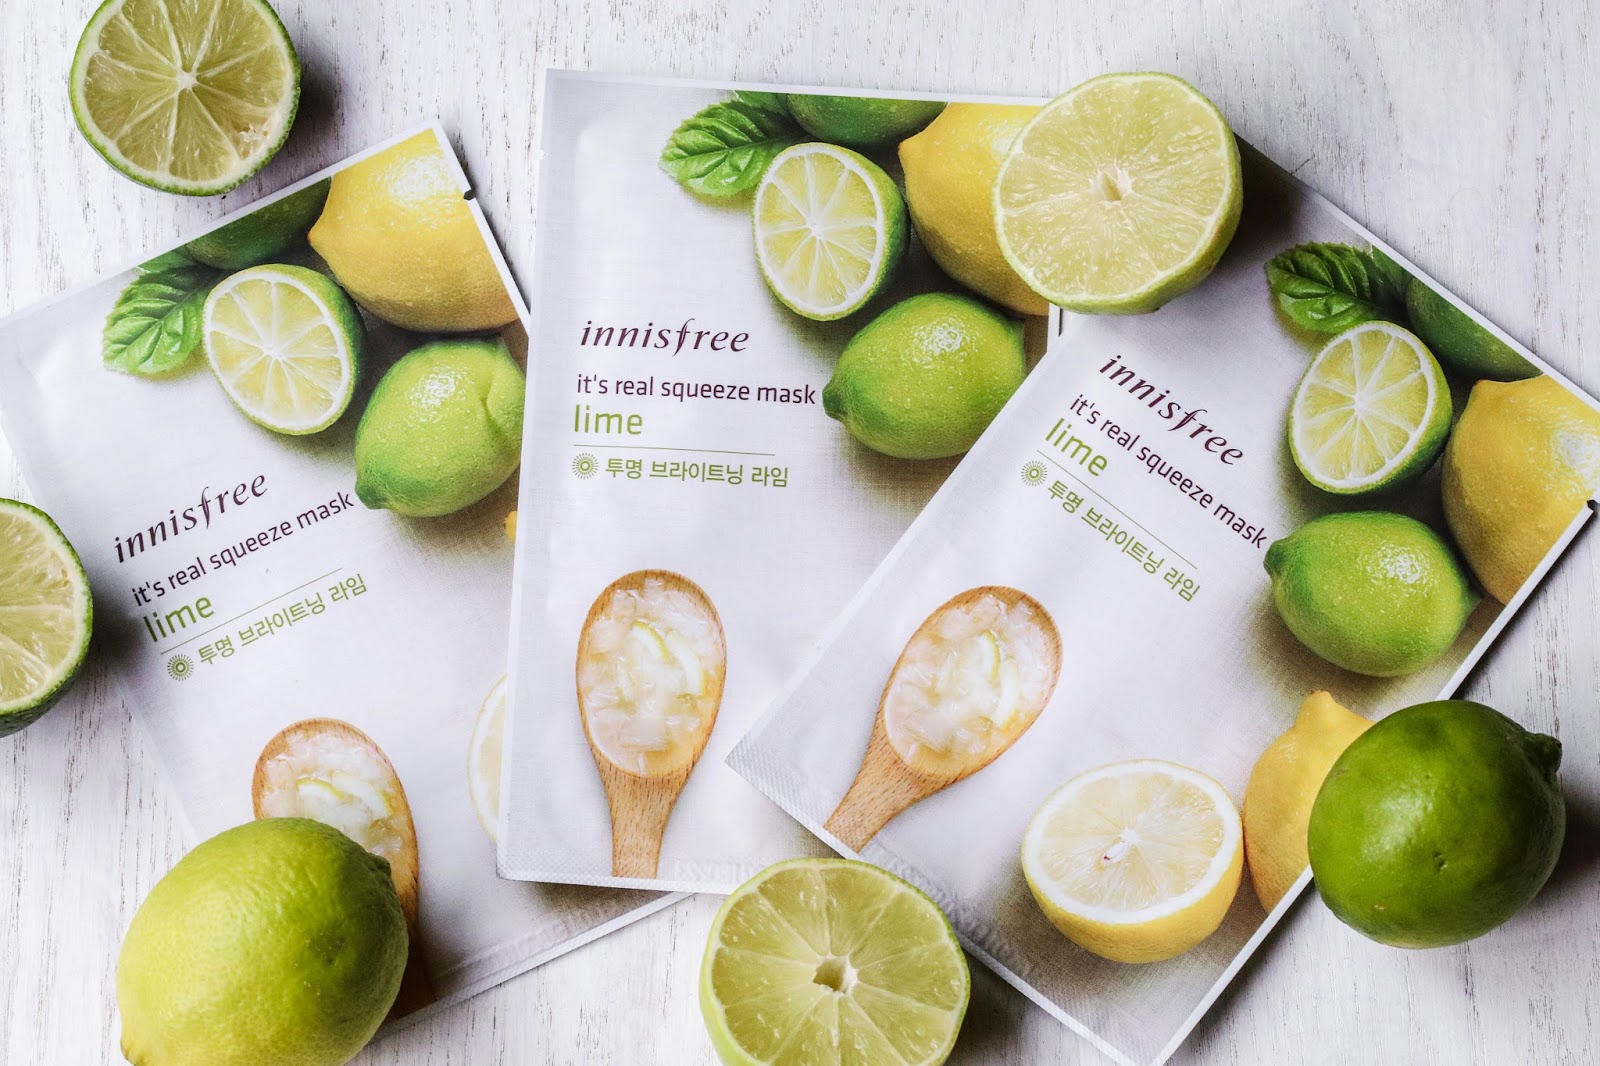 Korean Sheet Masks - Innisfree